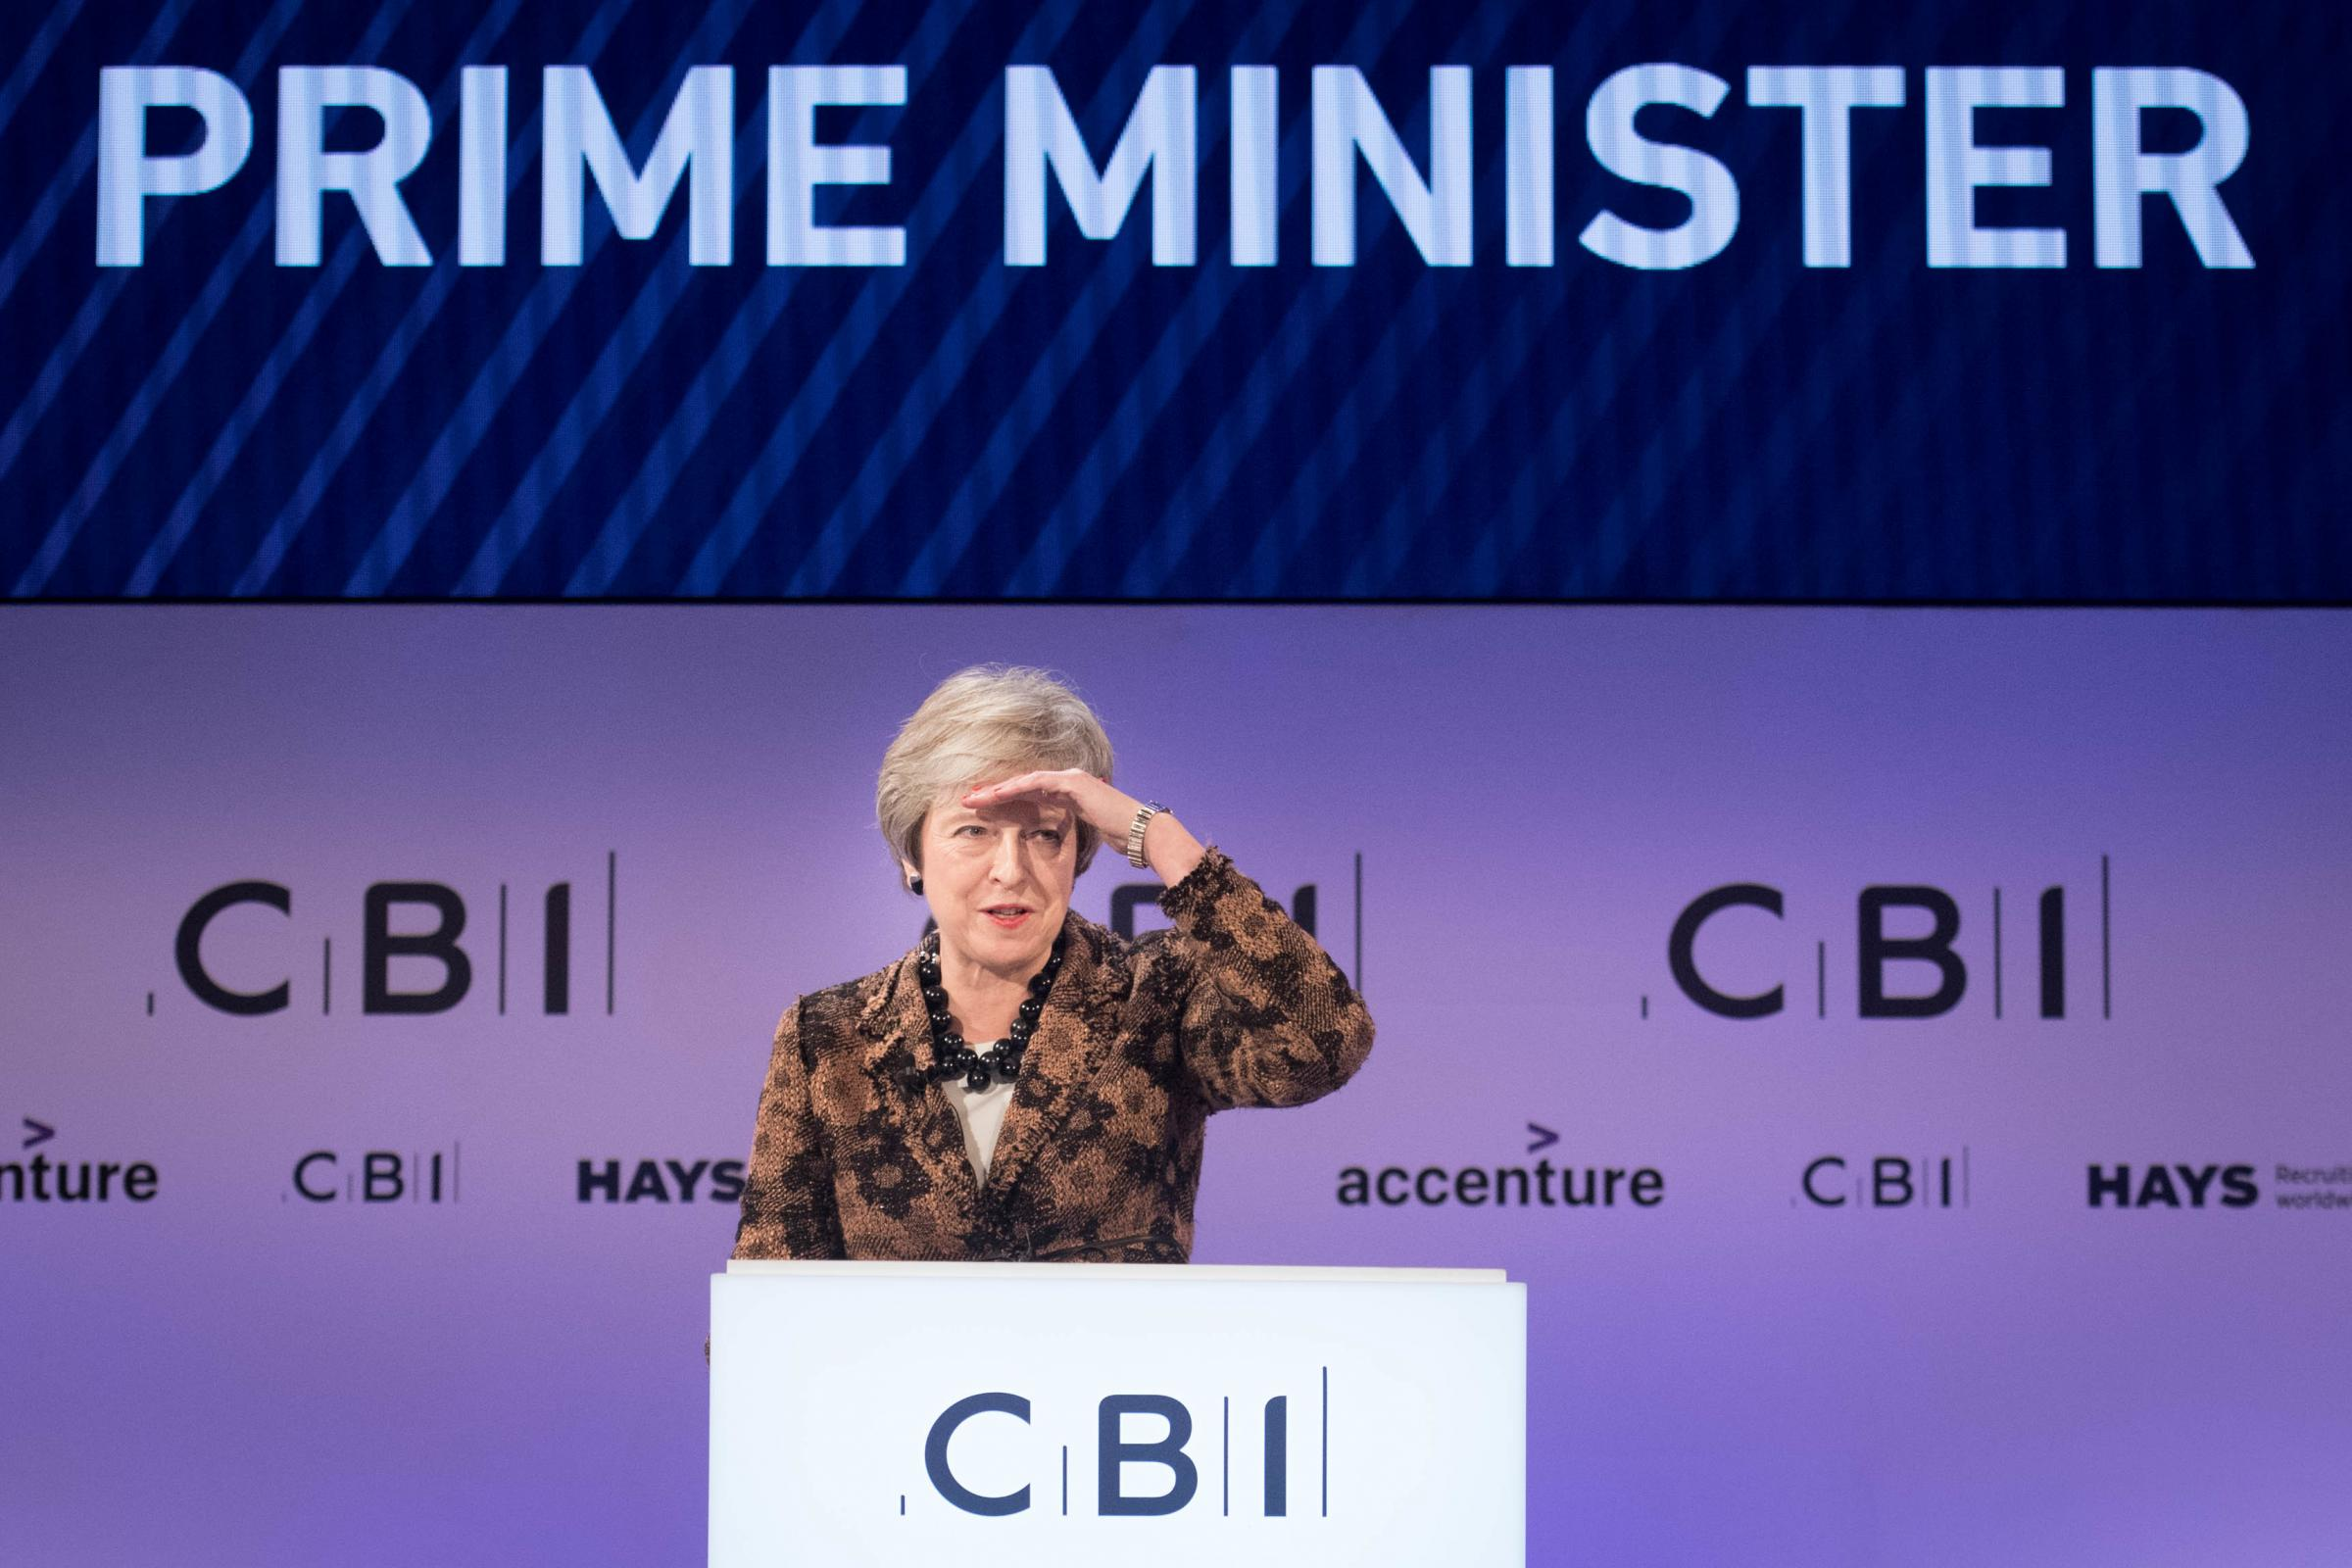 Prime Minister Theresa May speaking at the CBI annual conference at InterContinental Hotel in London. PRESS ASSOCIATION Photo. Picture date: Monday November 19, 2018. See PA story POLITICS Brexit. Photo credit should read: Stefan Rousseau/